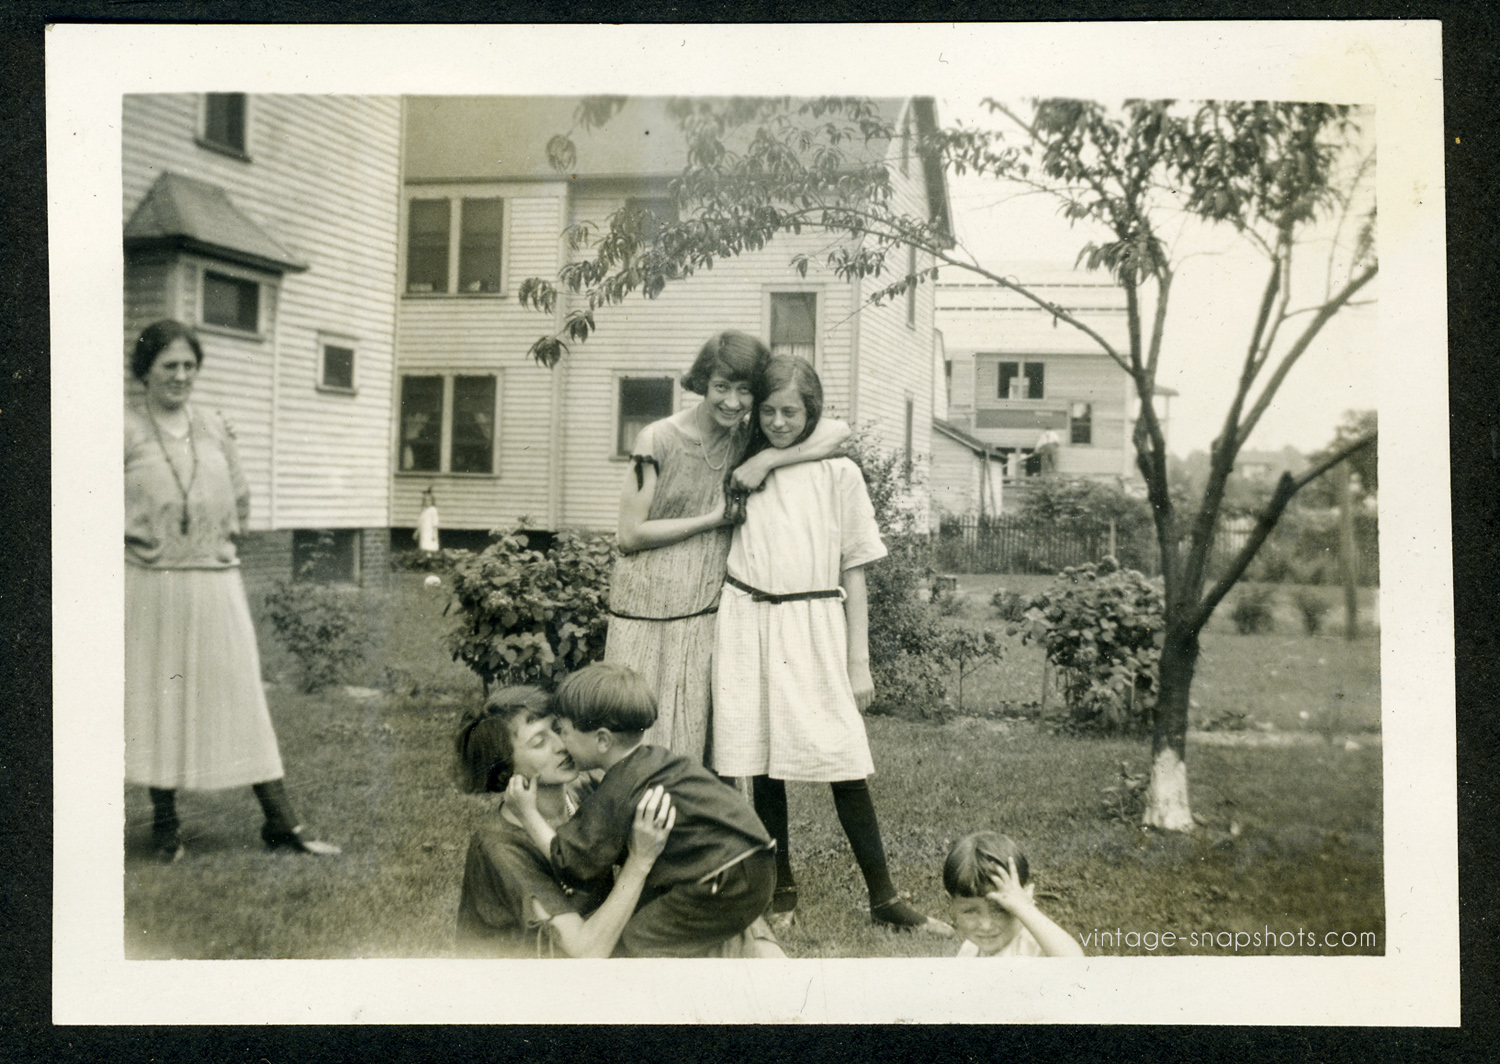 1920s photograph of females embracing, small girl in far background